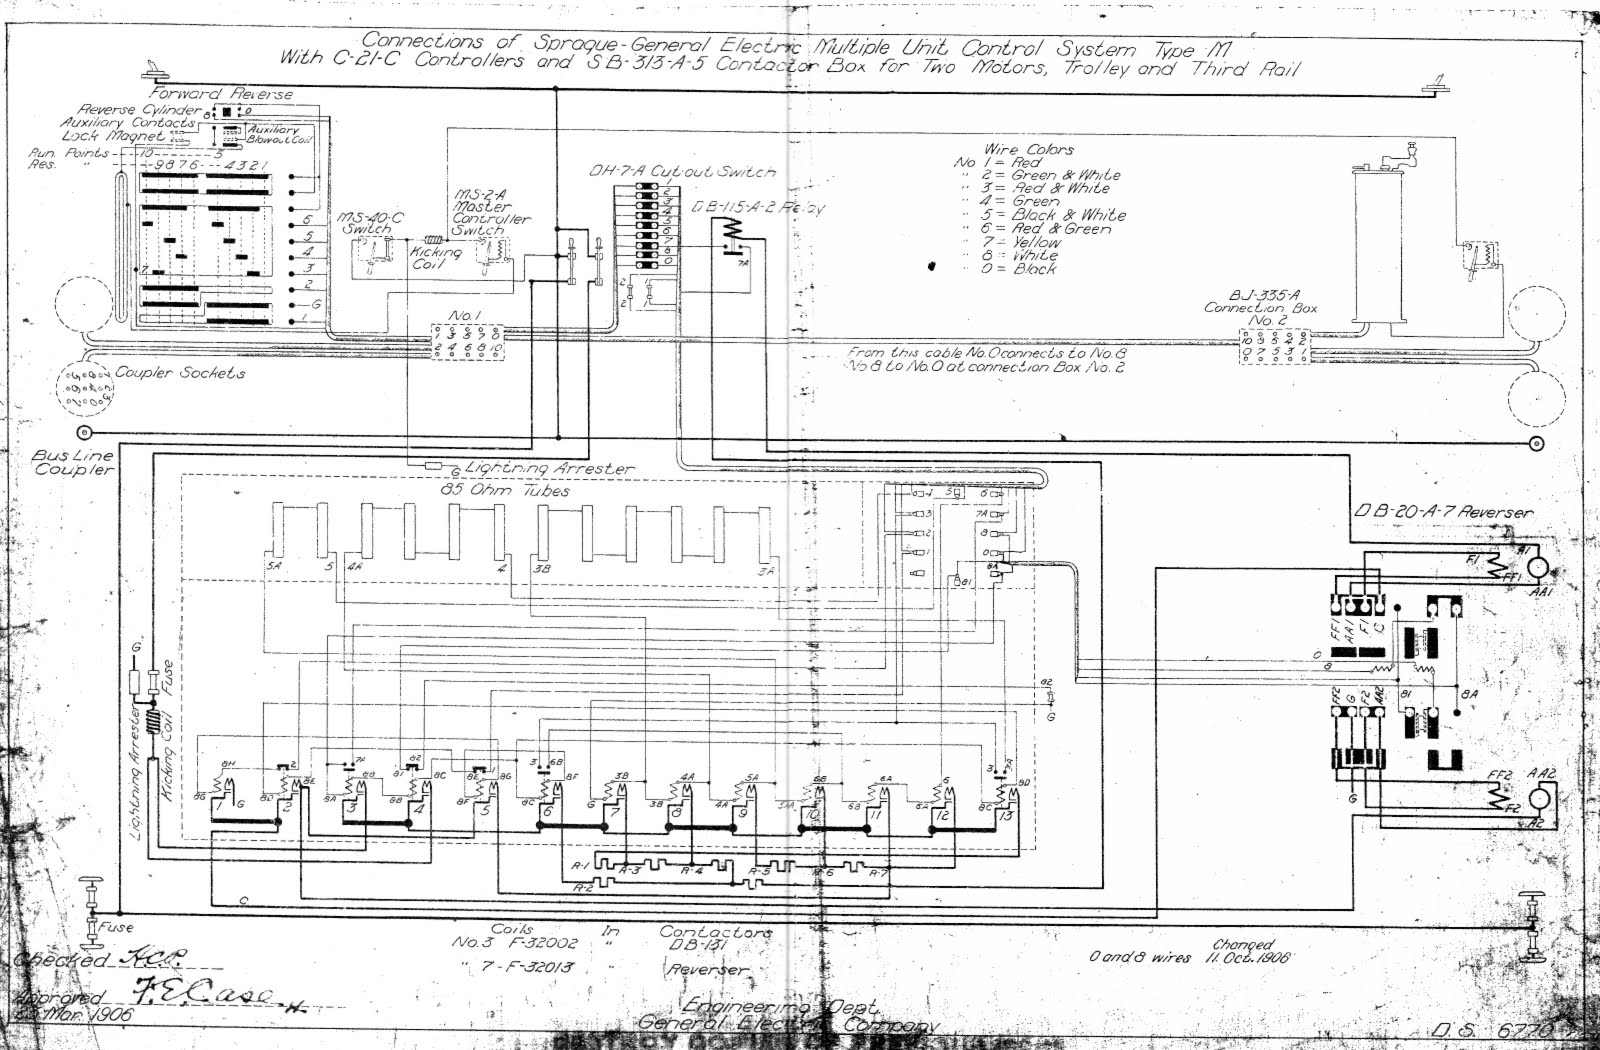 Ls3 Wiring Manual Ebook Deh 1400 Likewise Wiring Diagram Baler As Well  Pioneer Deh 1700 Wiring